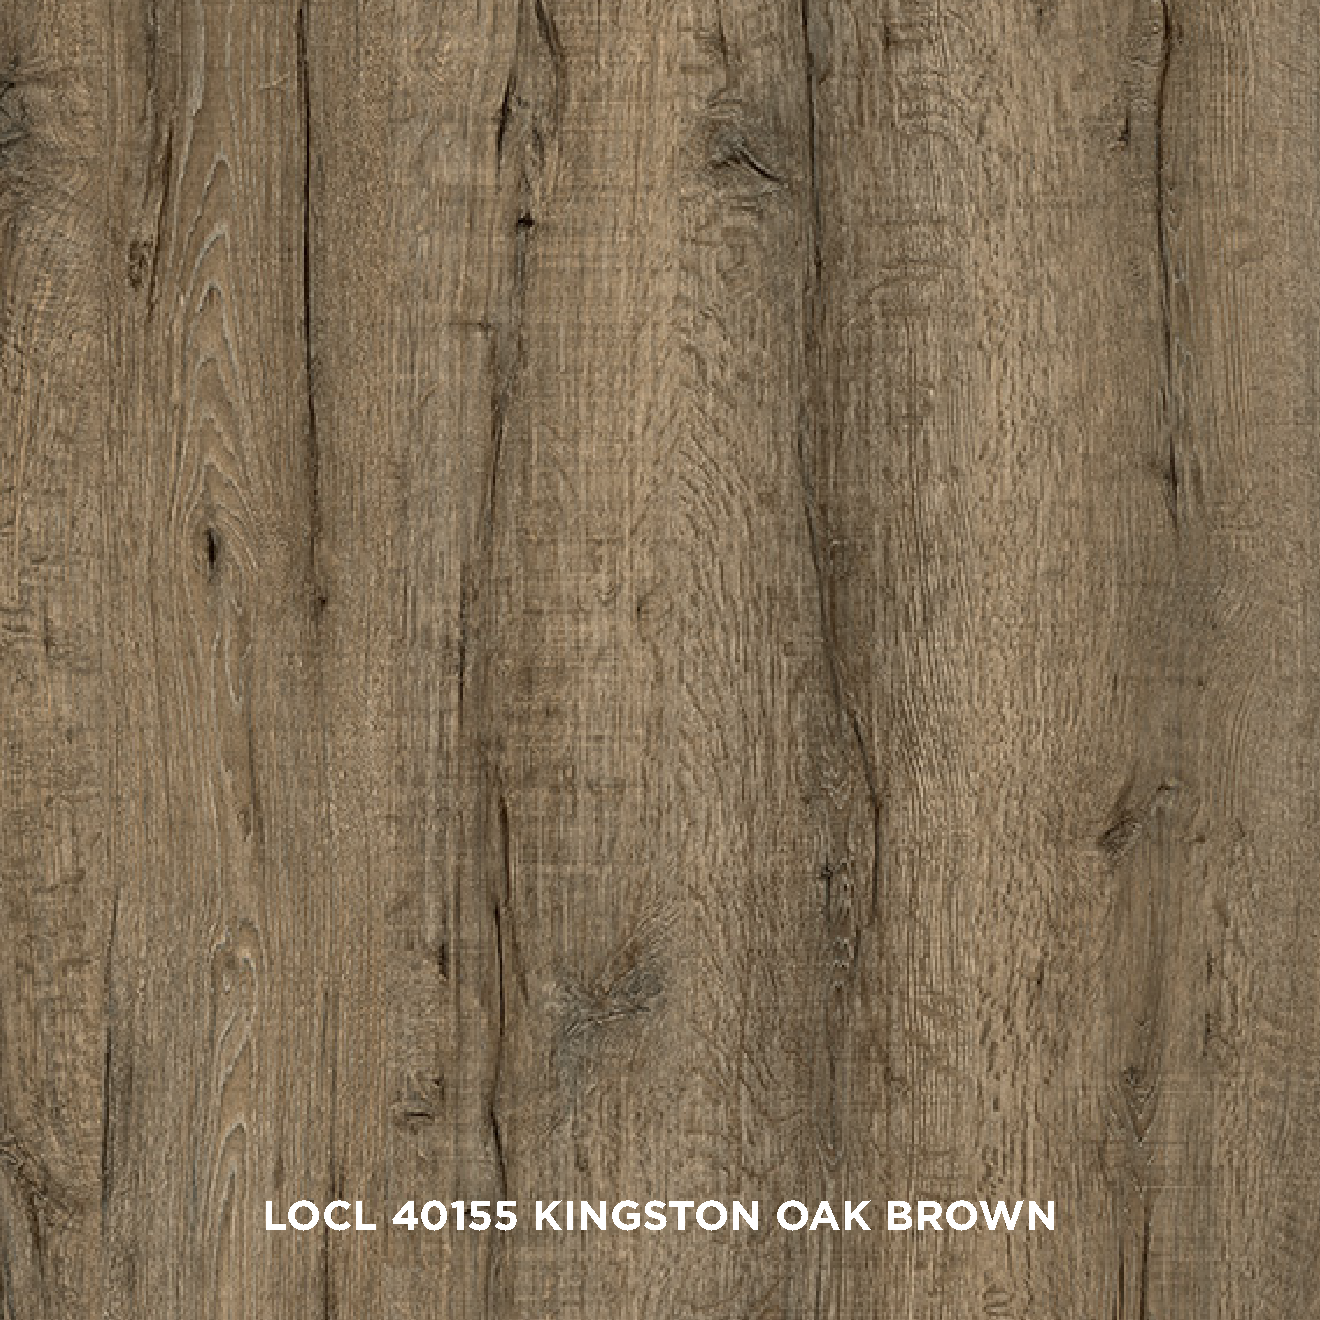 LOCL 40155 KINGSTON OAK BROWN